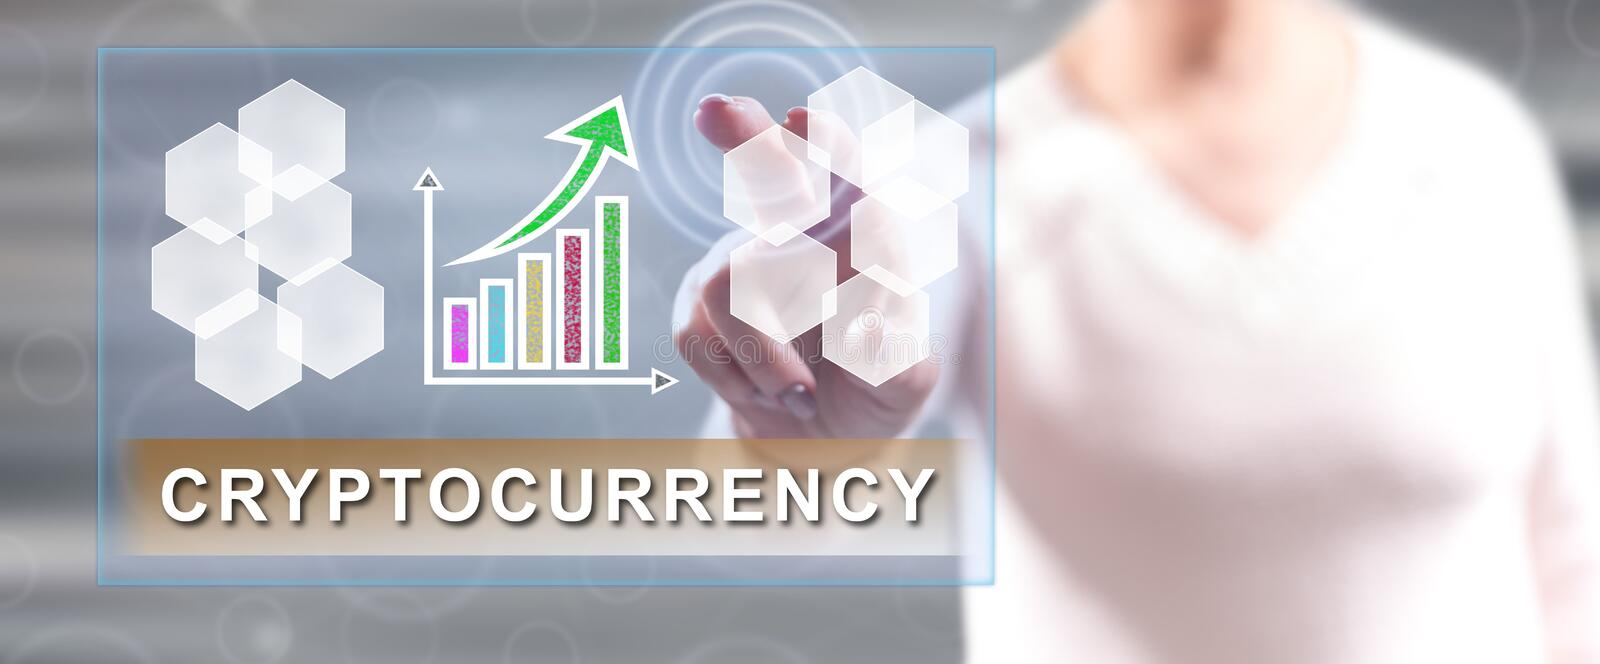 Woman touching a cryptocurrency success concept royalty free stock photography